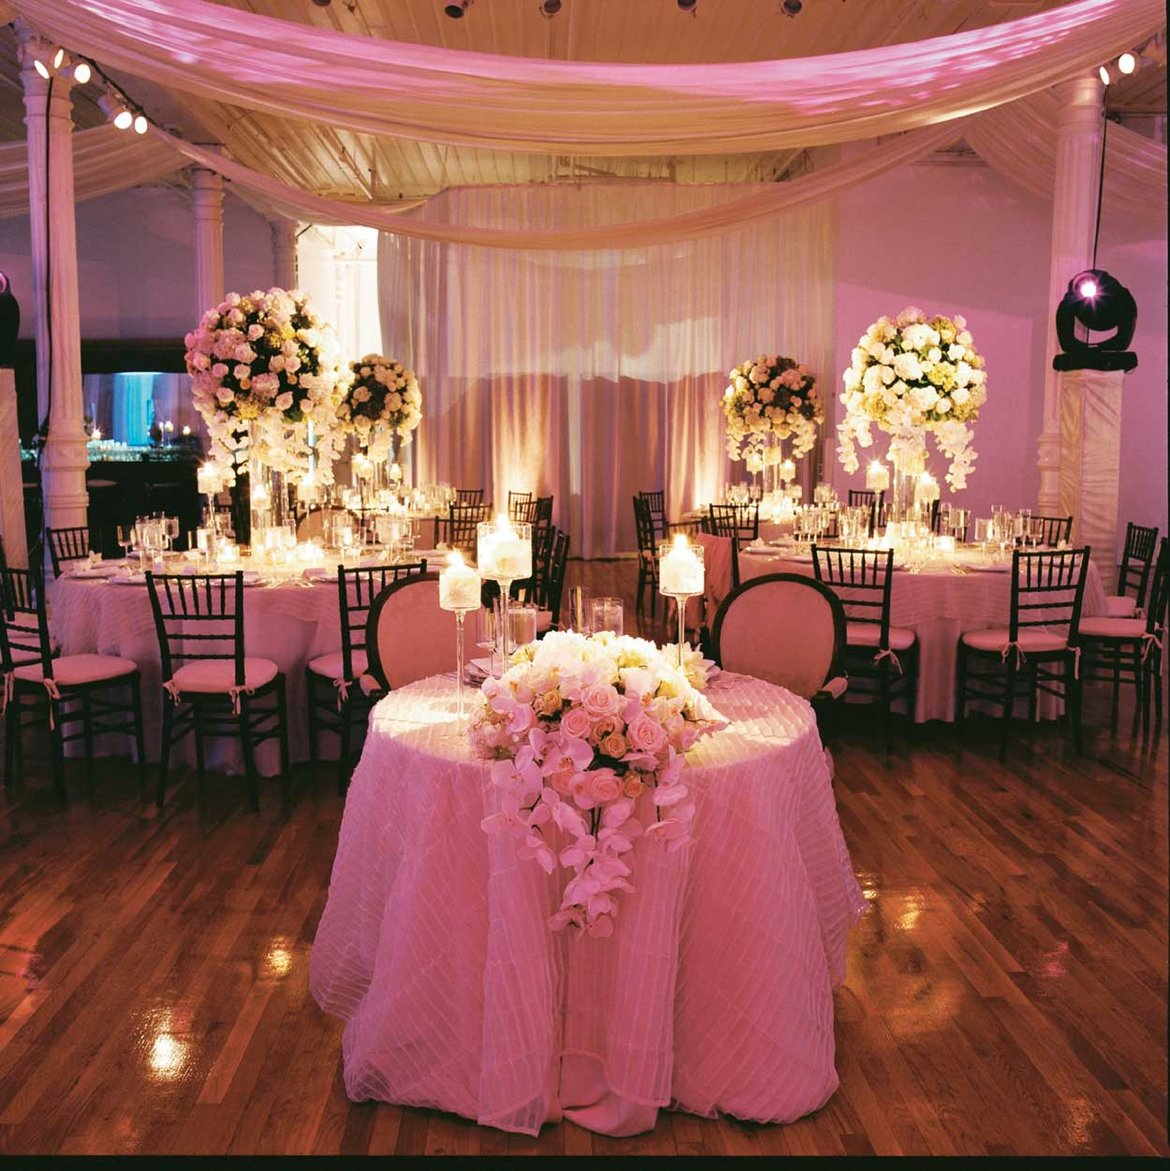 Luxe Wedding Receptions For Less BridalGuide